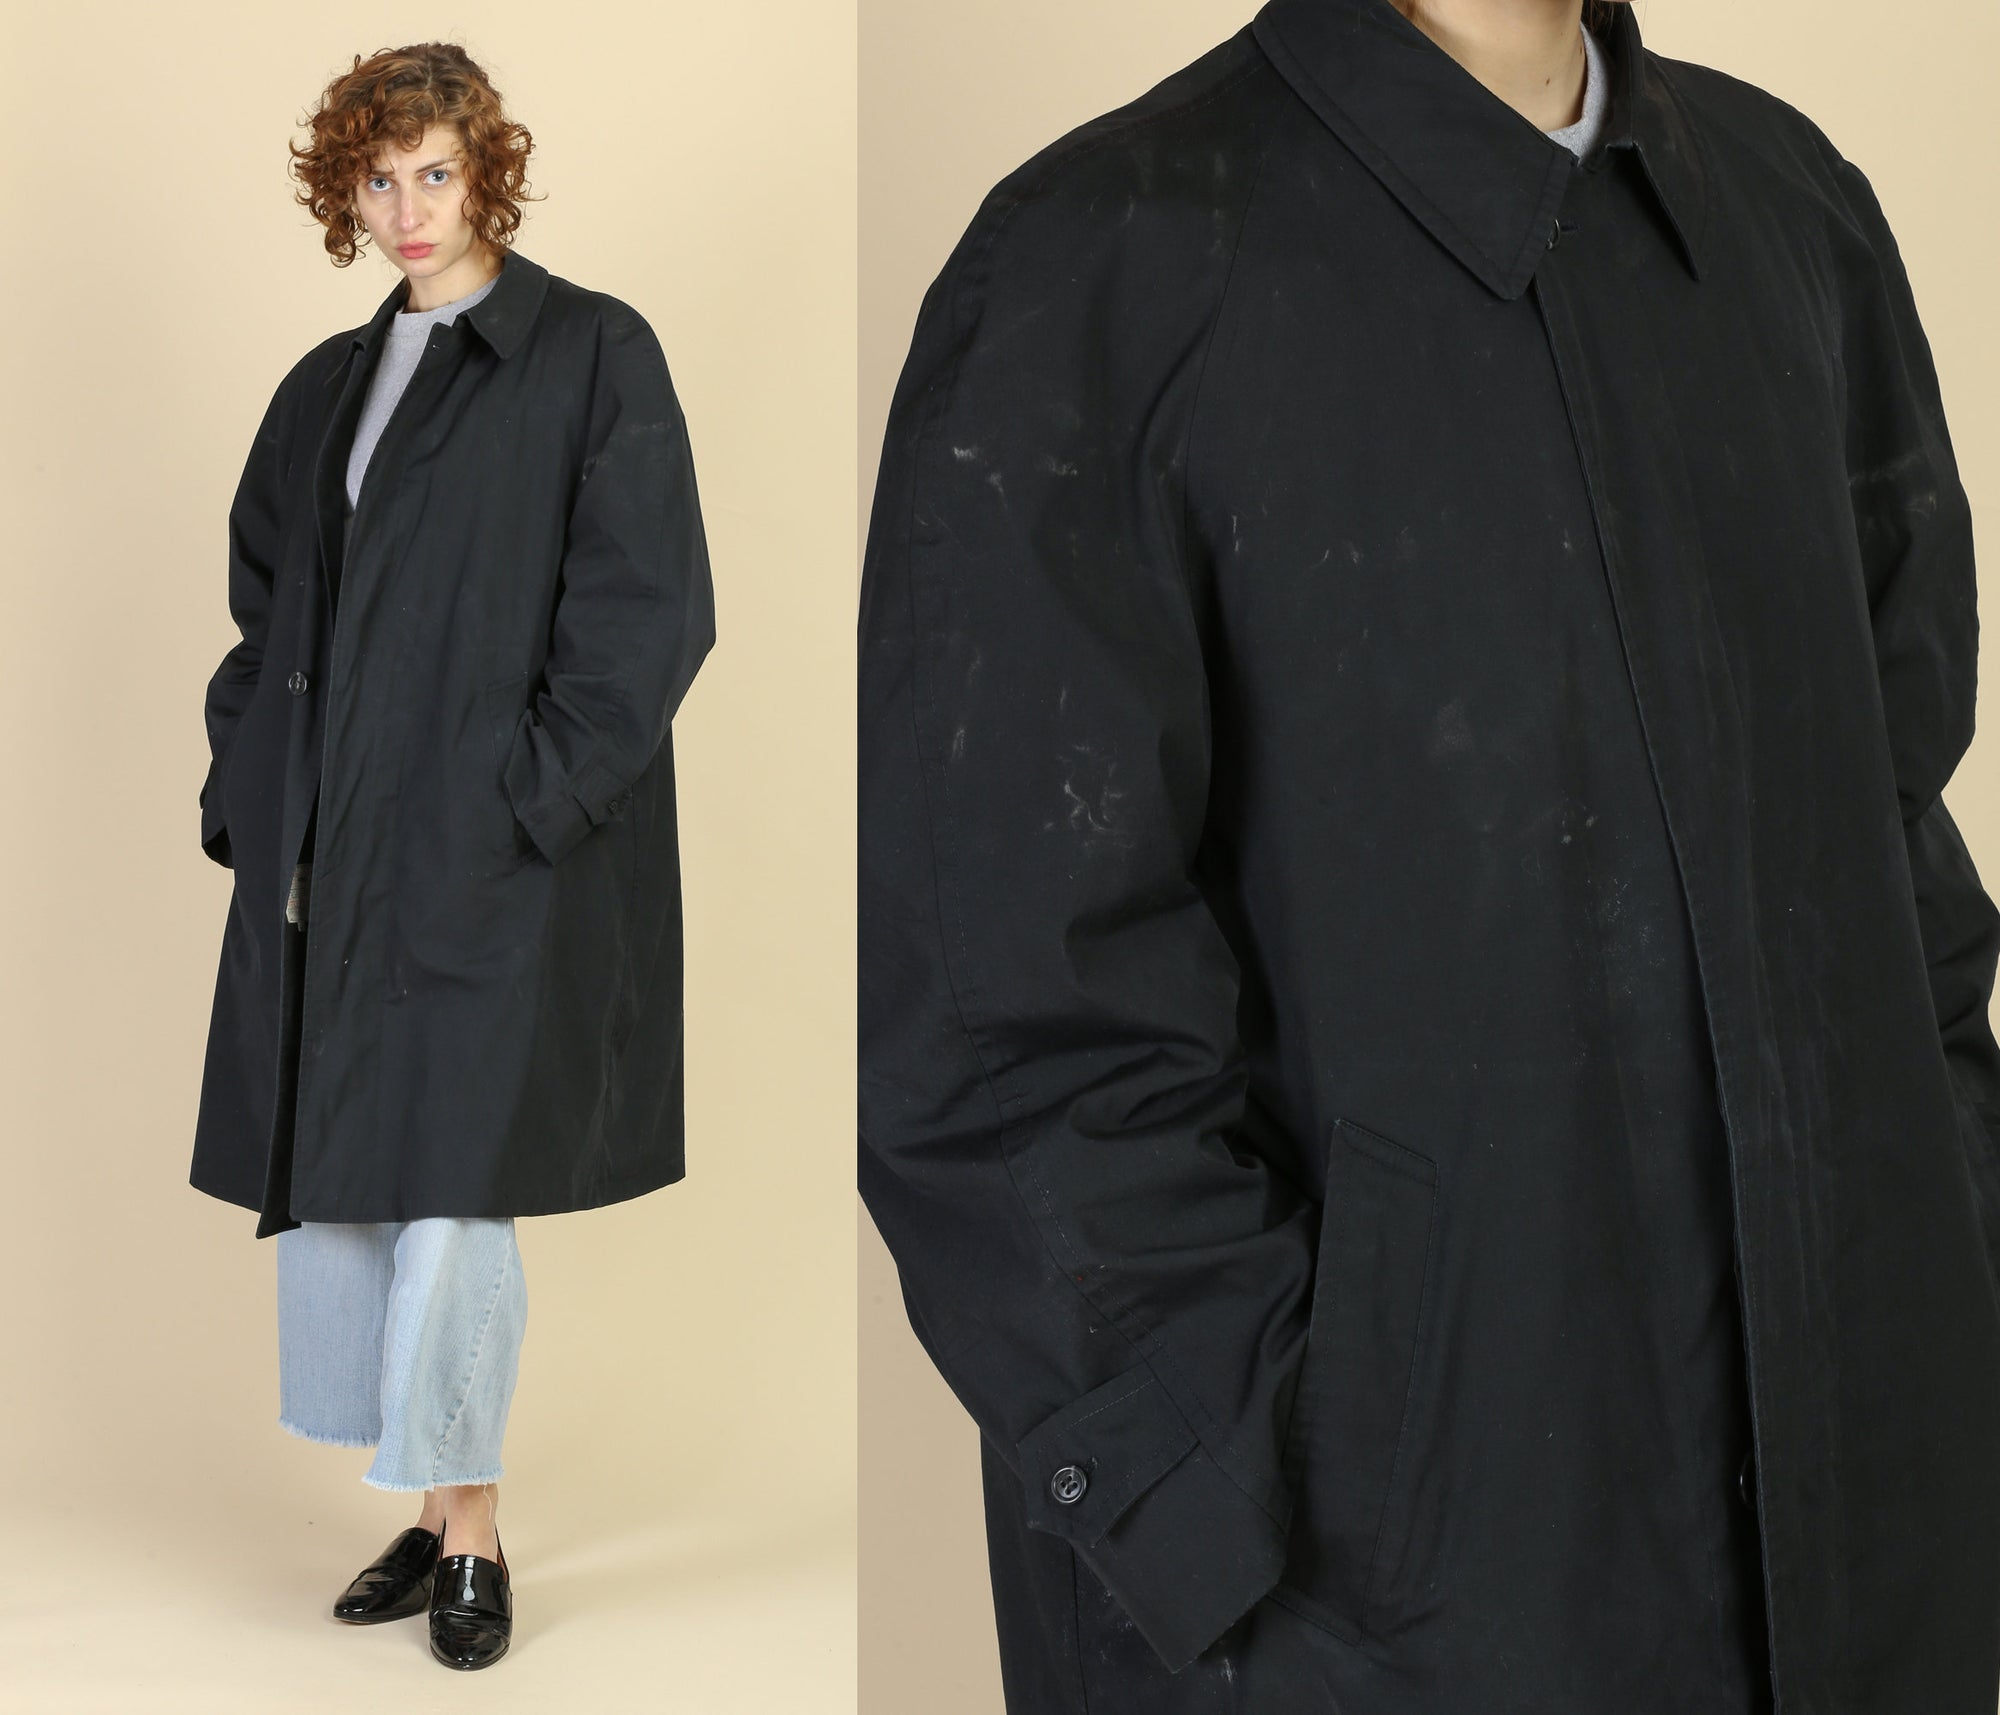 Vintage Black London Fog Overcoat - Men's Large, 42